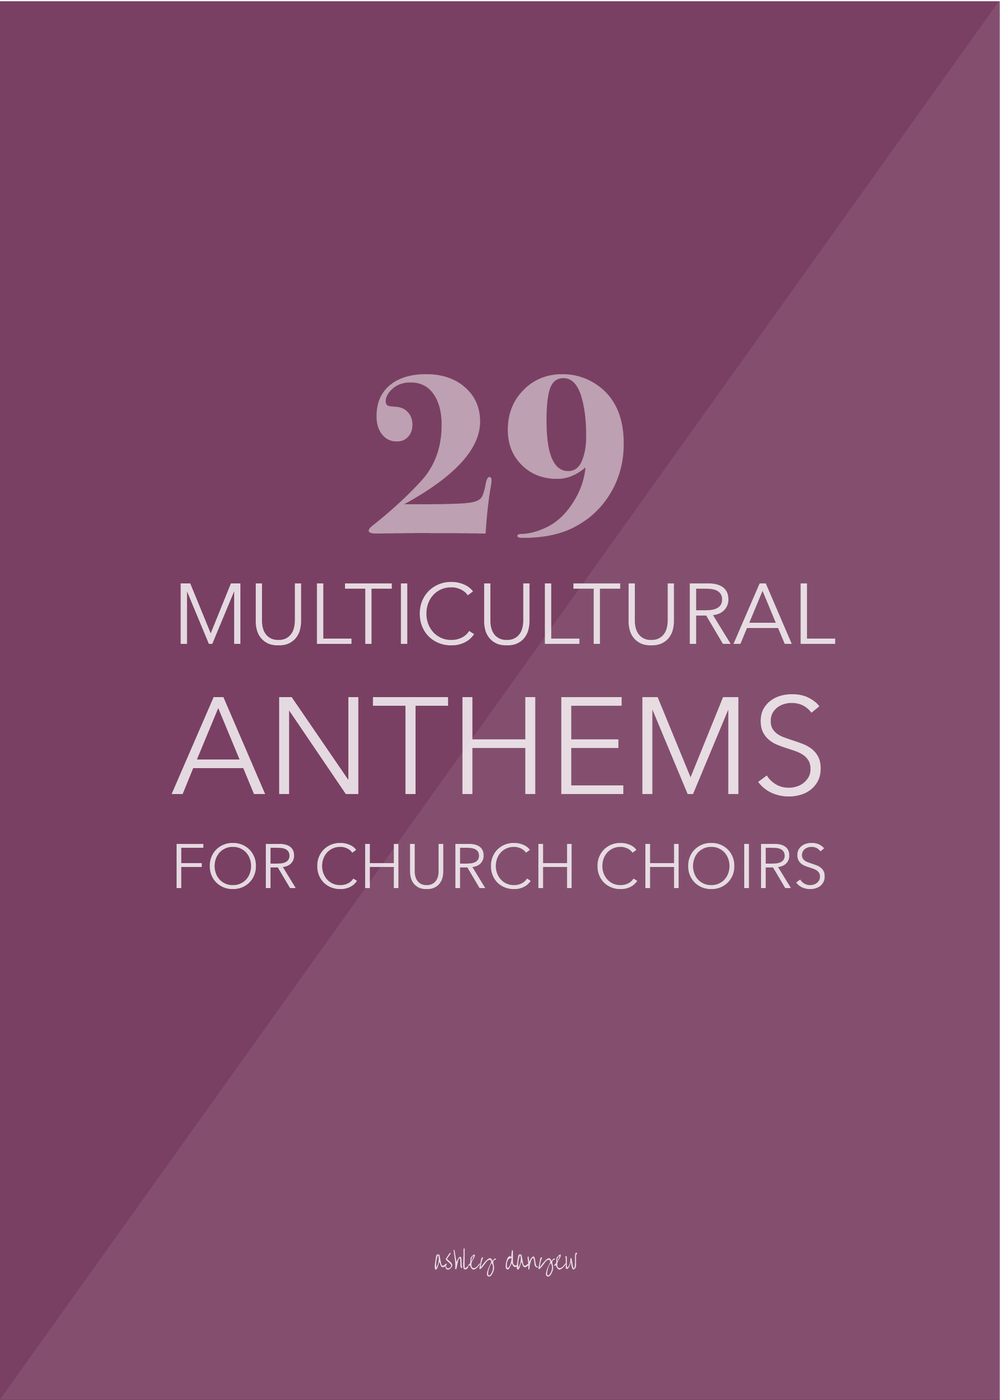 29 Multicultural Anthems for Church Choirs